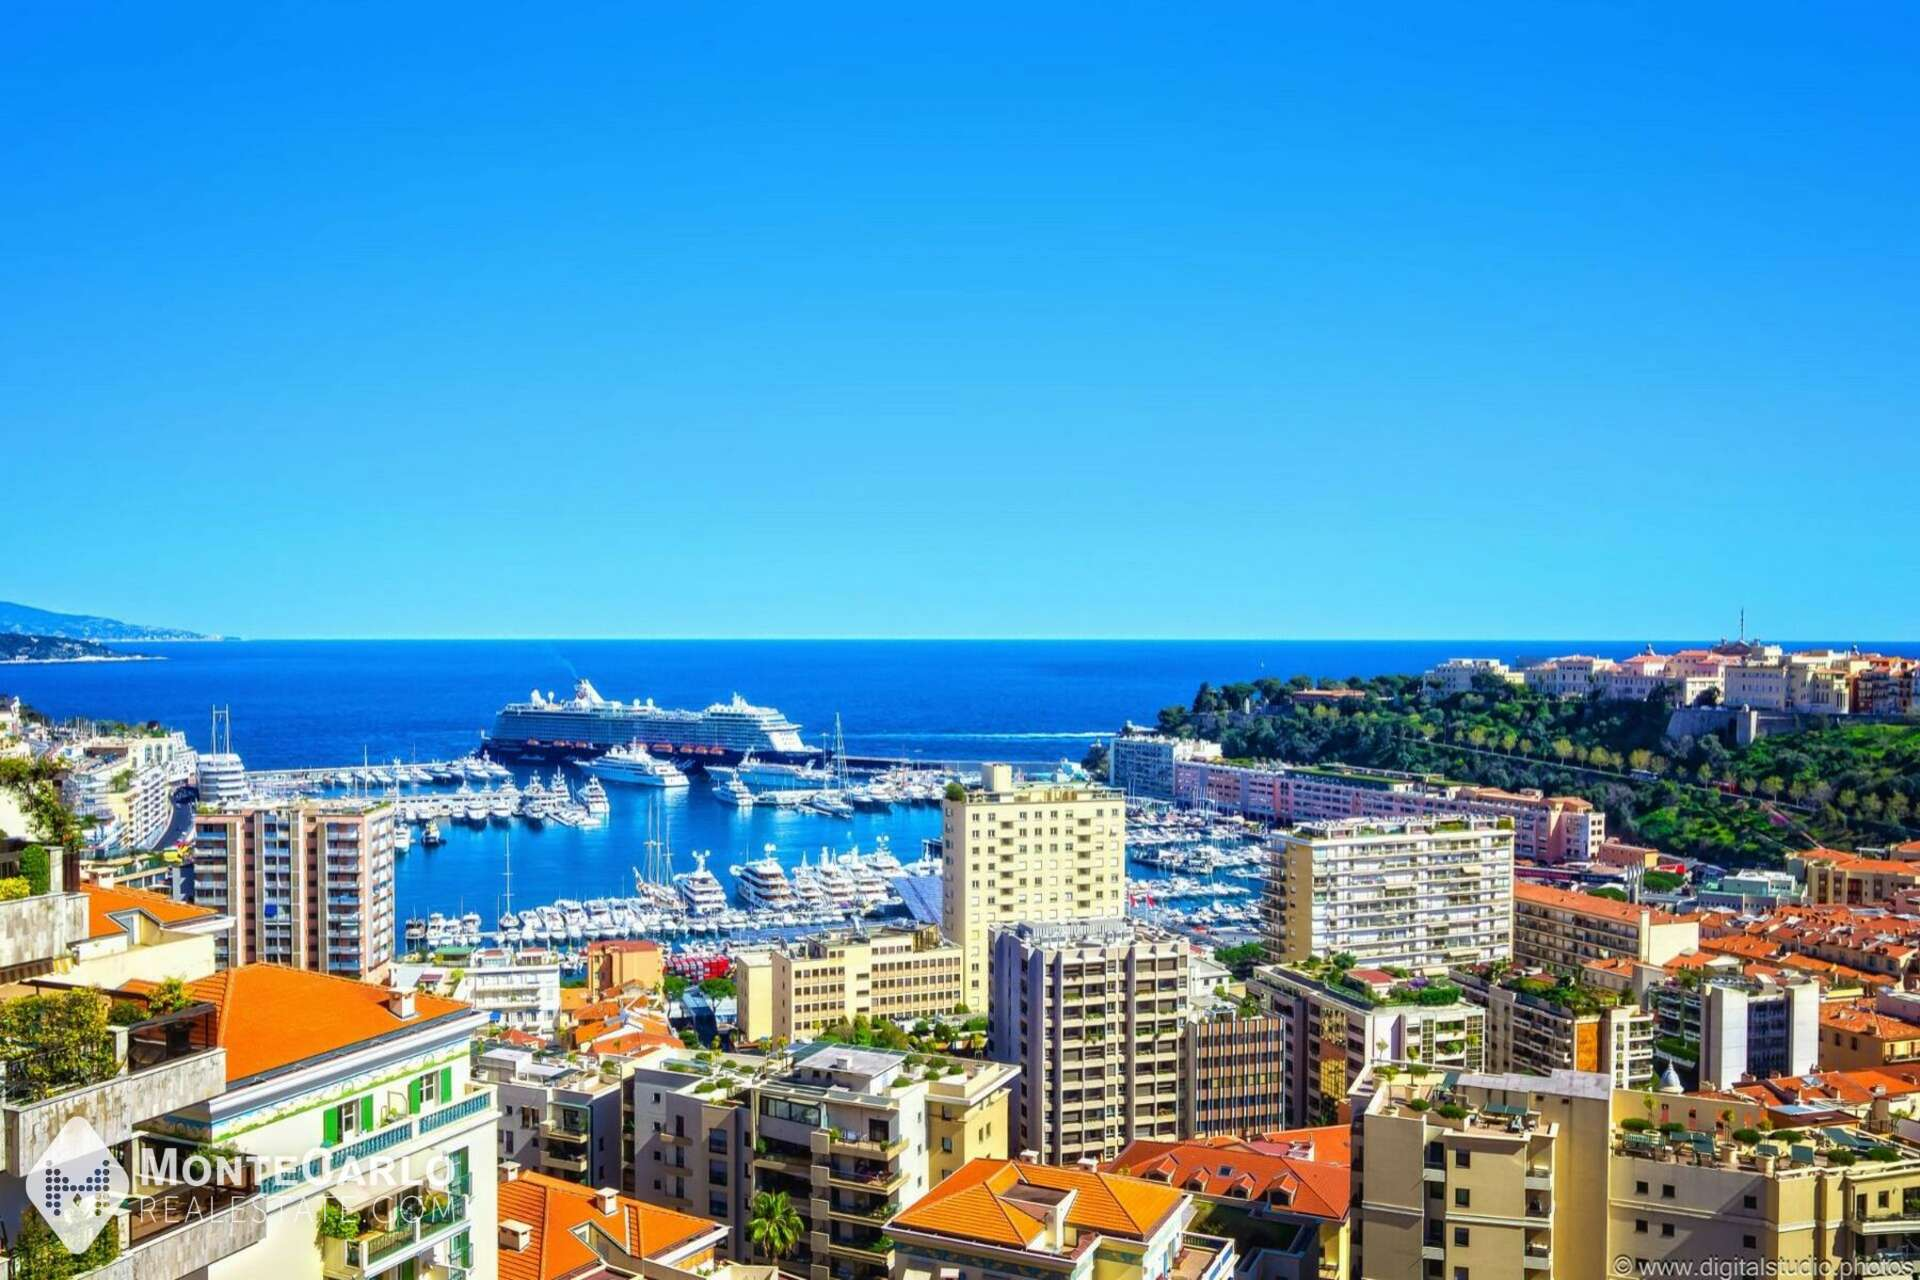 Location Beverly Palace bloc A - Appartement / 2 pièces : 6 800 € | Monte-Carlo Real Estate [517L10604A]